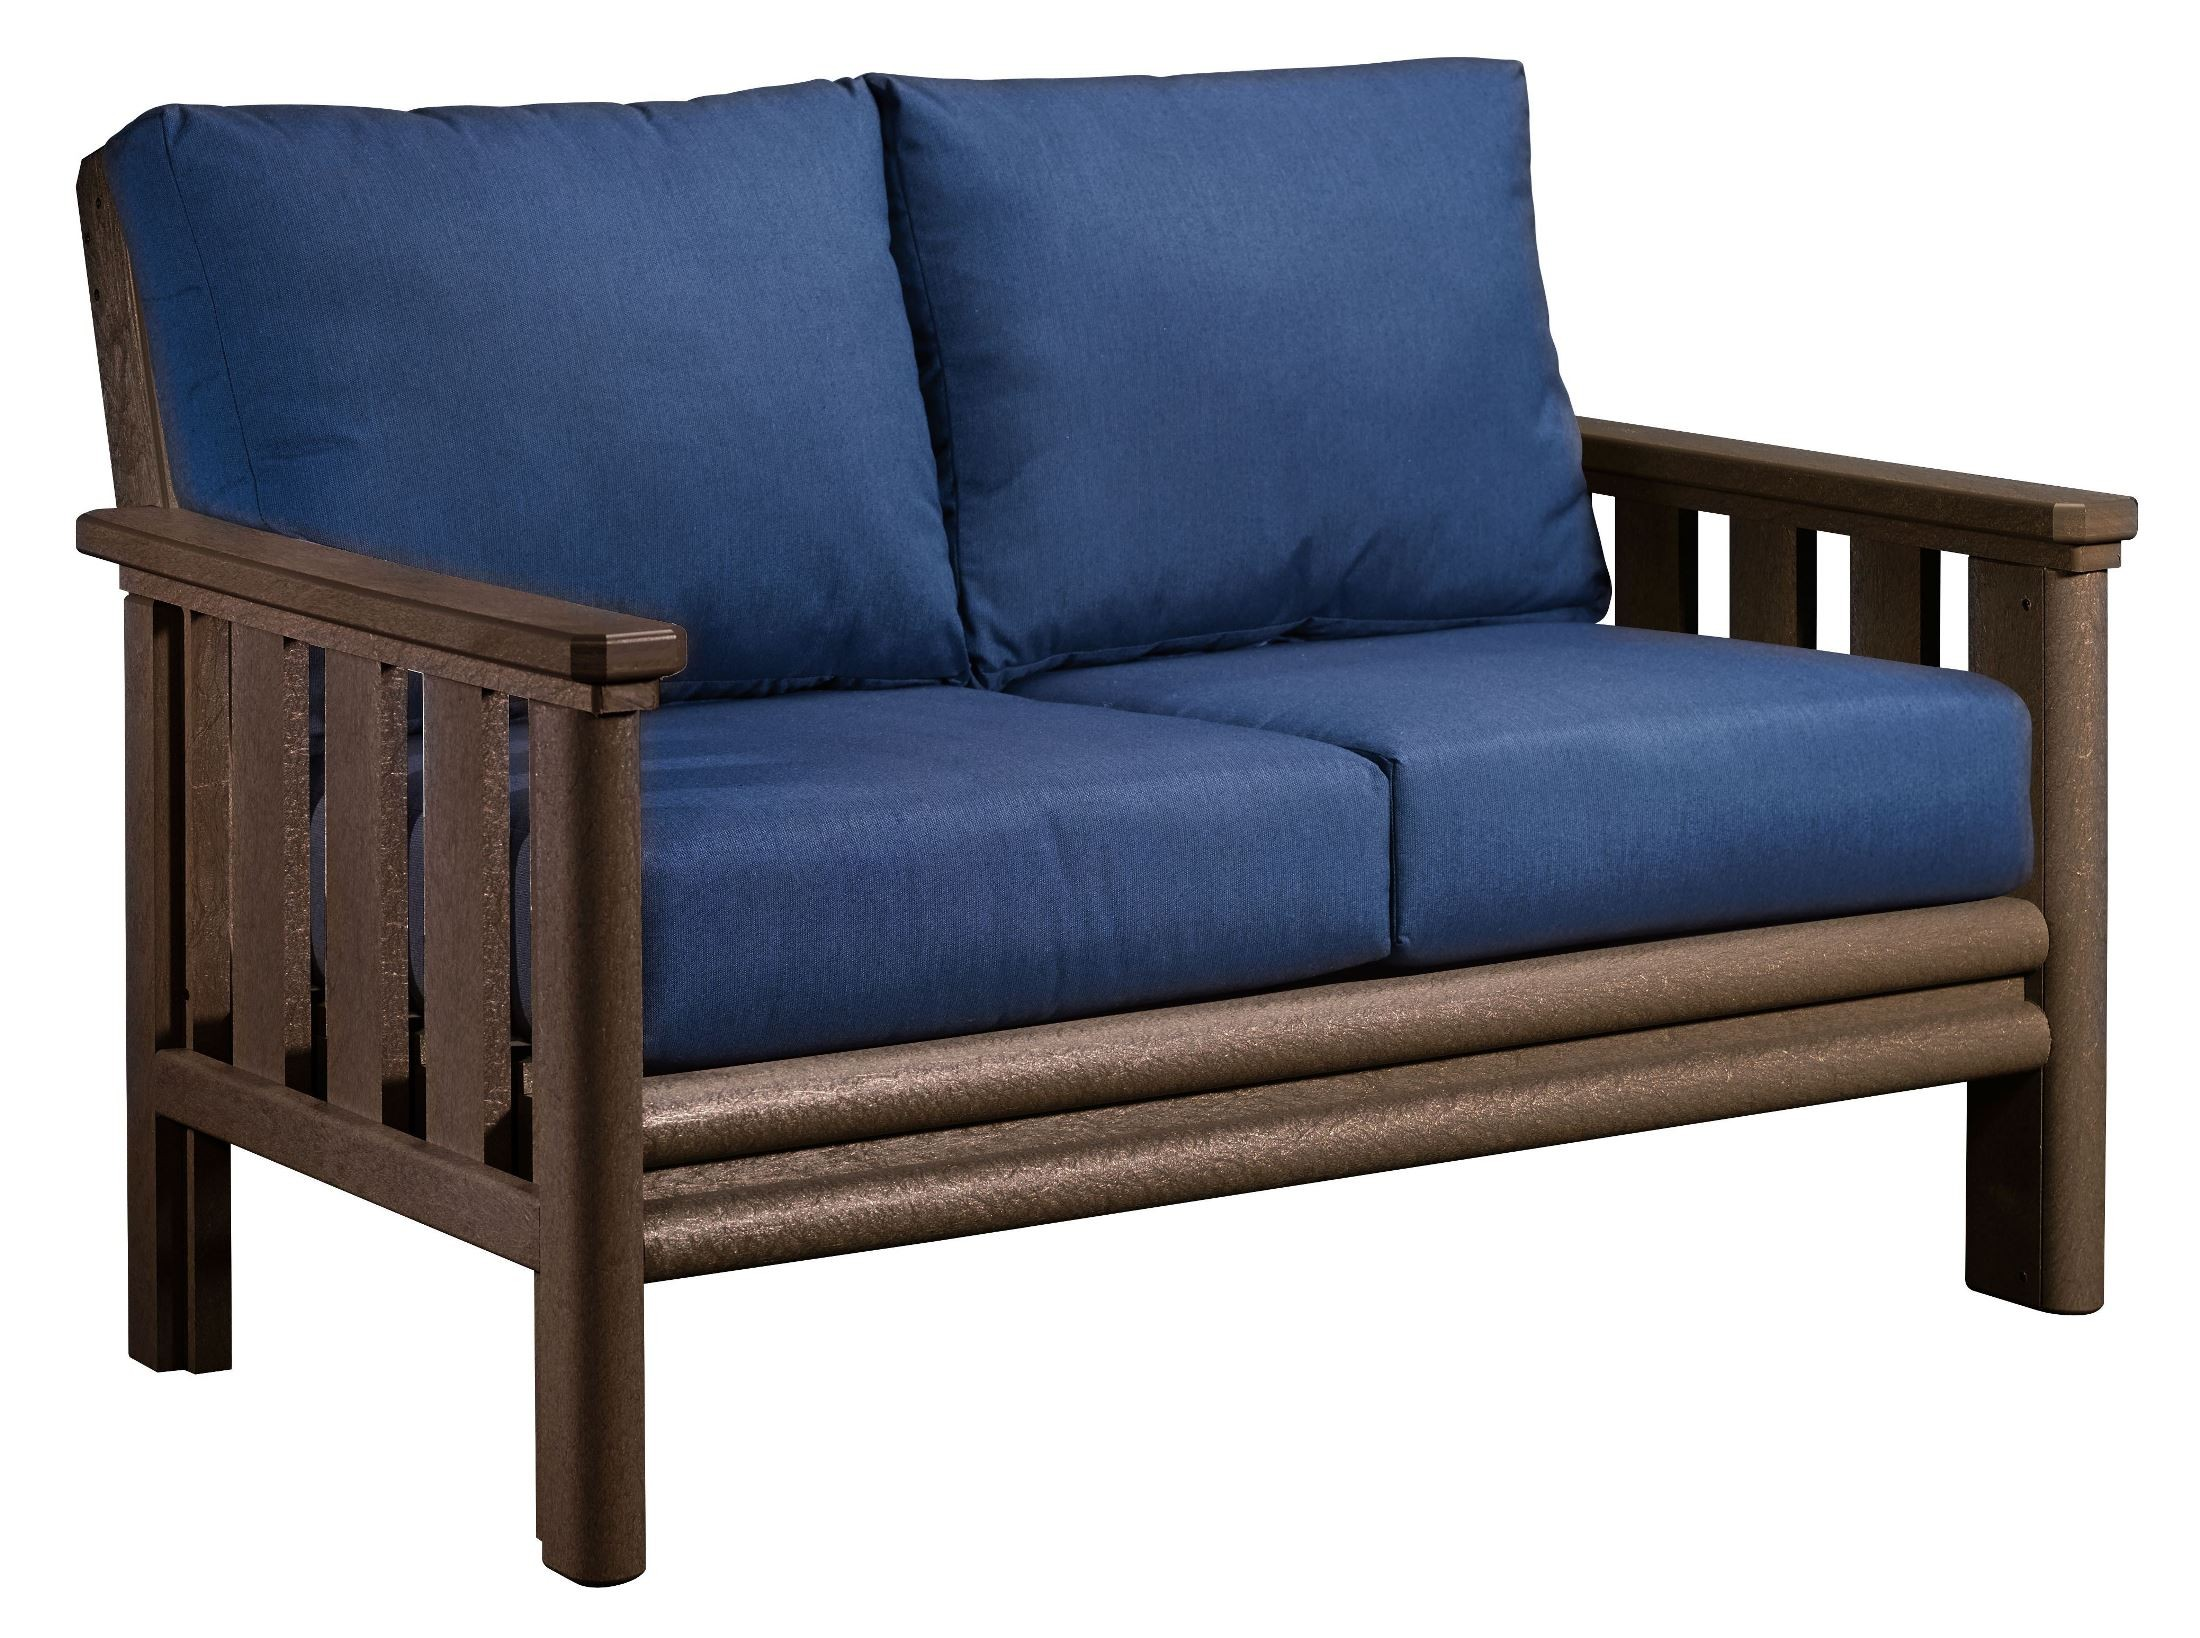 Stratford Chocolate Outdoor Living Set From Cr Plastic Ds143 16 48080 Coleman Furniture